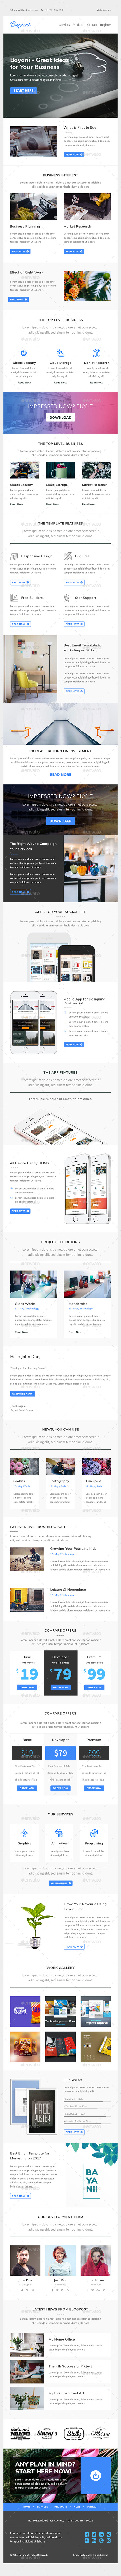 Bayani - E-newsletter PSD Template - E-newsletters Web Elements